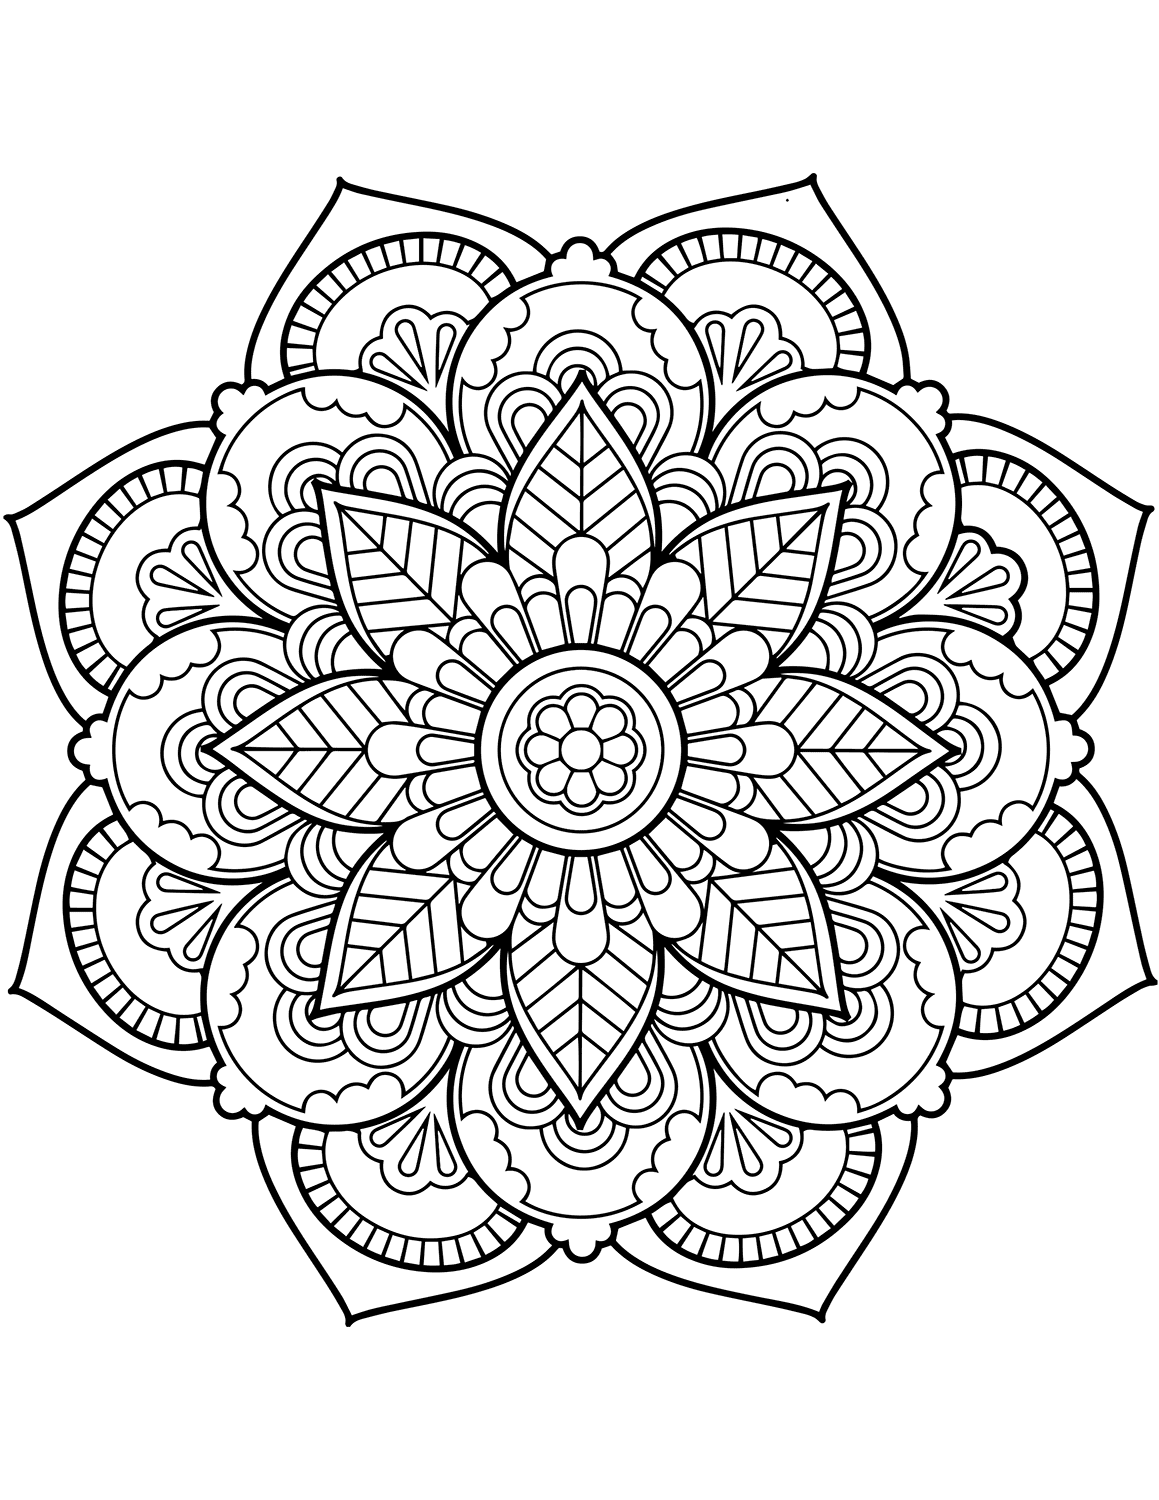 free printable mandalas for adults mandala adult coloring pages printable coloring home mandalas for adults free printable